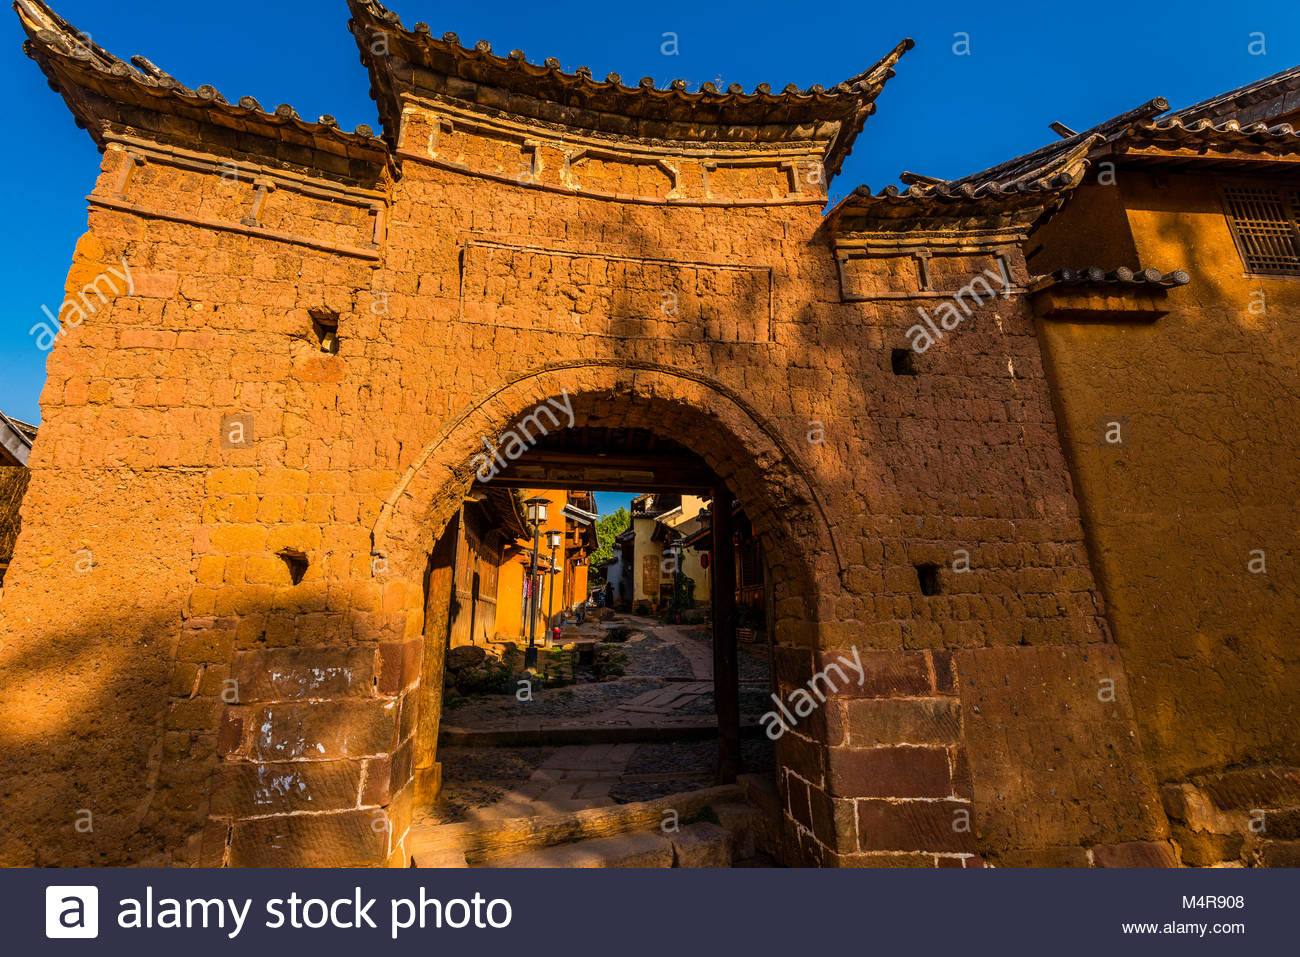 Back lanes with buildings made of mud brick (adobe) in the market town of Shaxi, on the Tea Horse Caravan Road, - Stock Image